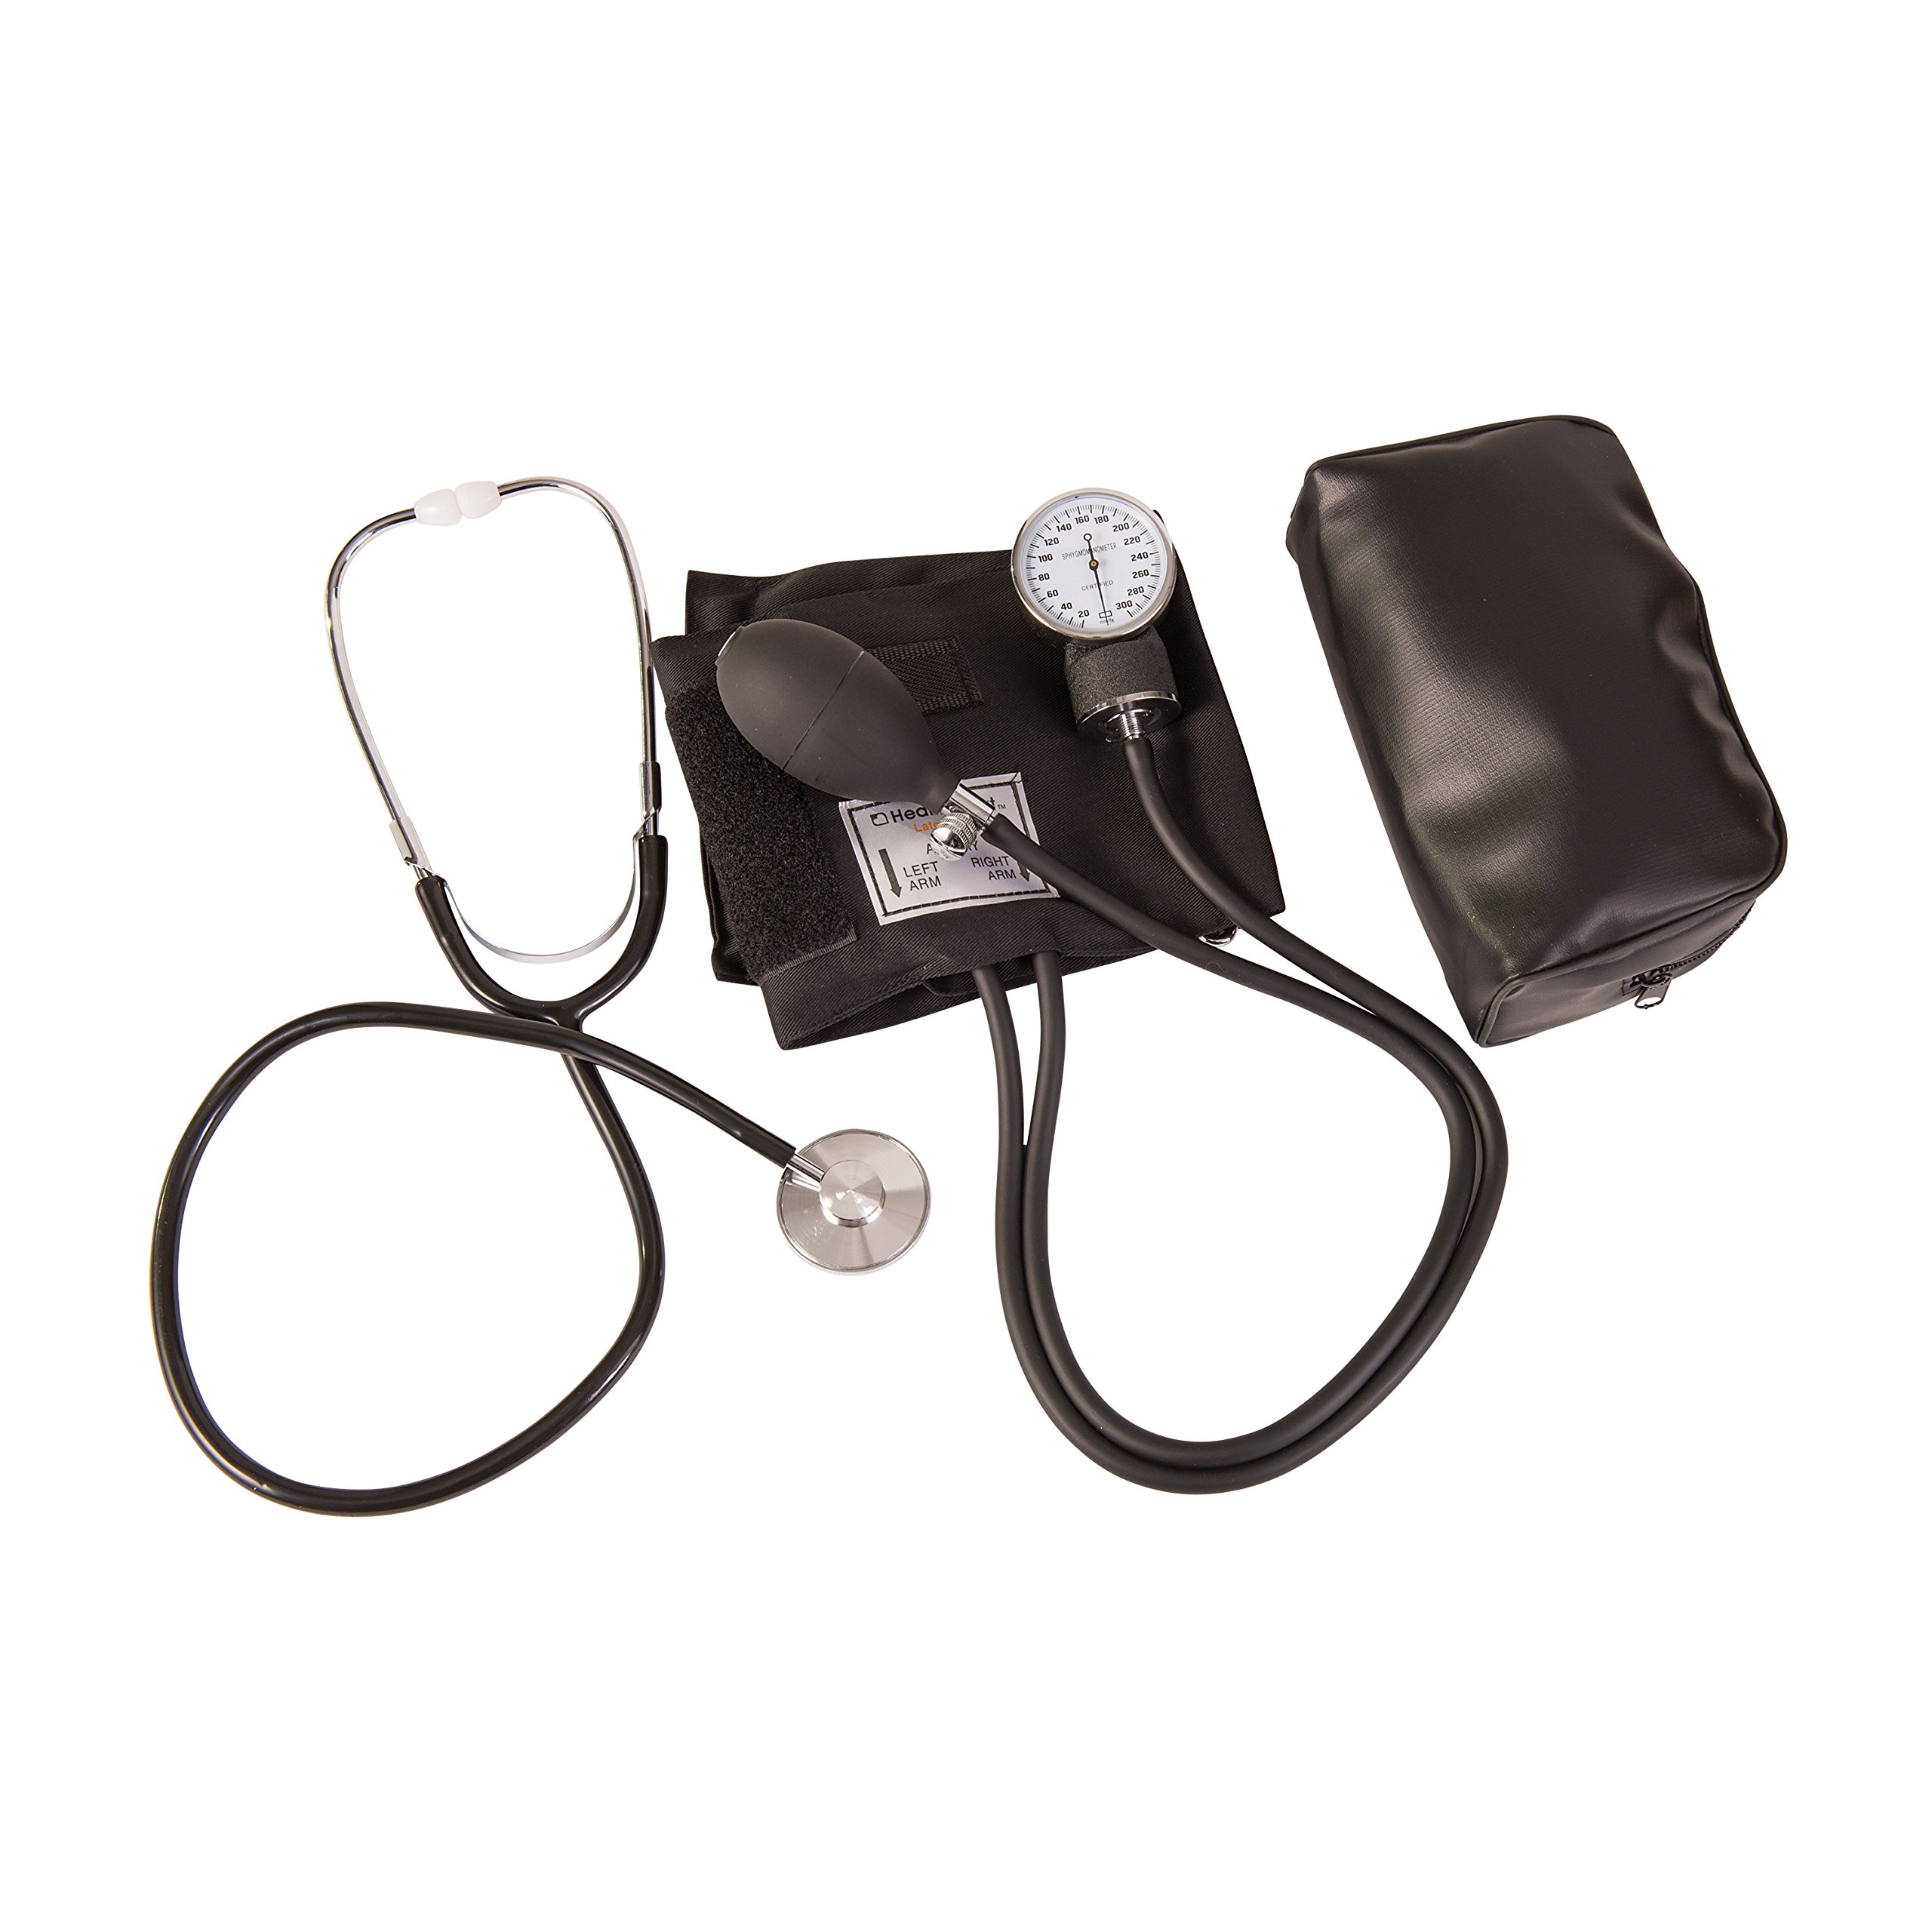 HealthSmart Professional Aneroid Sphygmomanometer Blood Pressure Gauge, Stethoscope and Carrying Case, Adult Cuff, Reliable and Accurate, Black